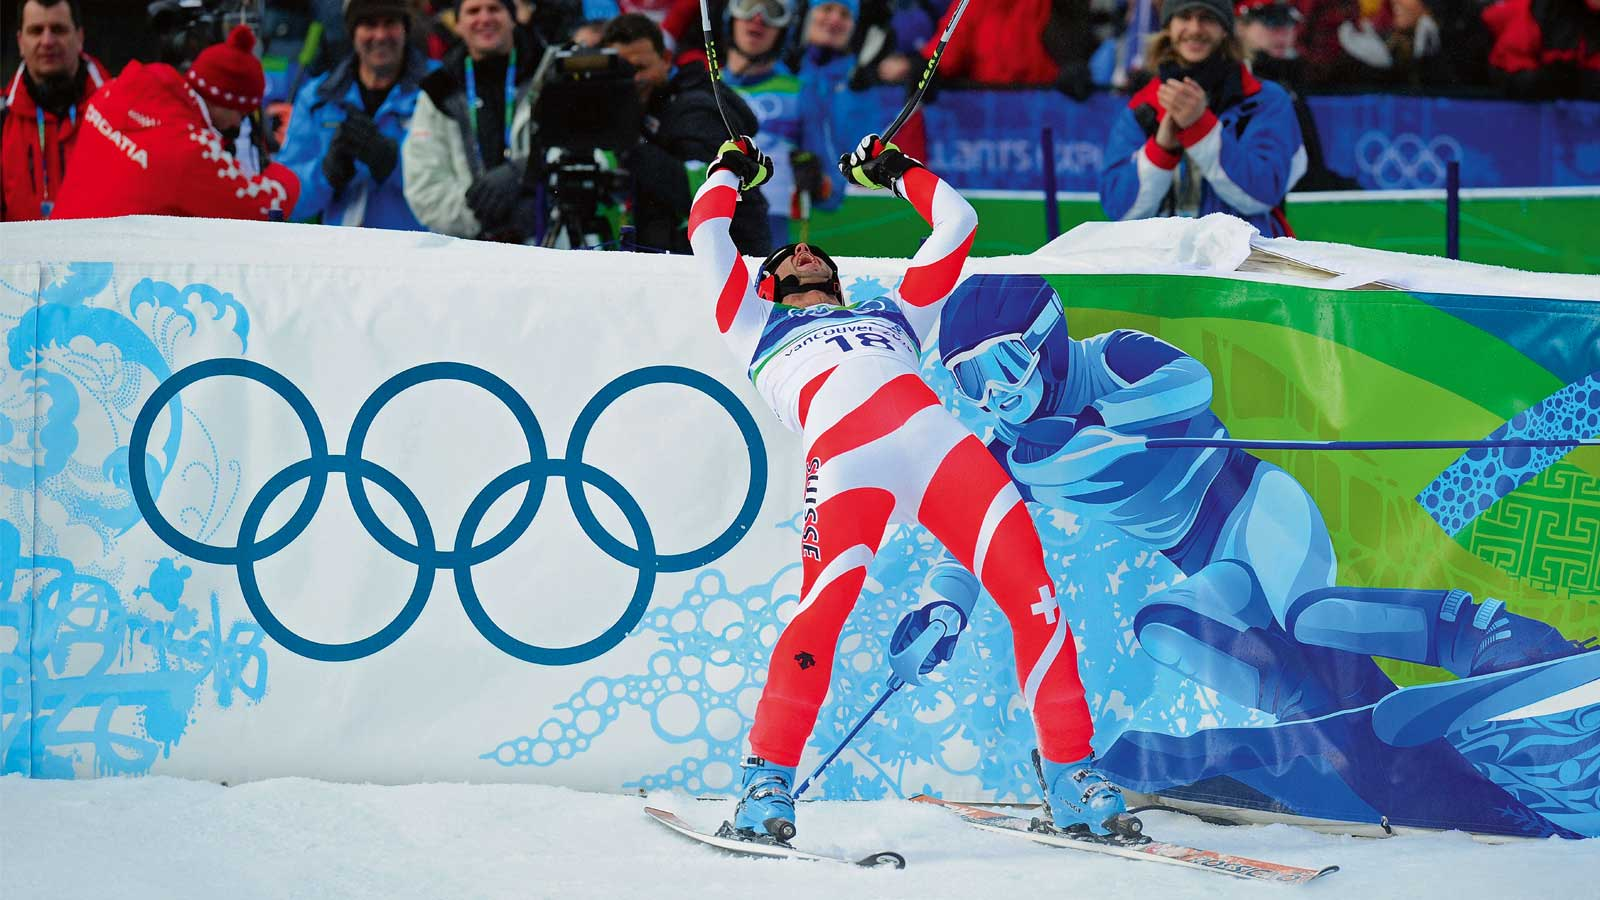 imgpreview_tvcolympic_large_13